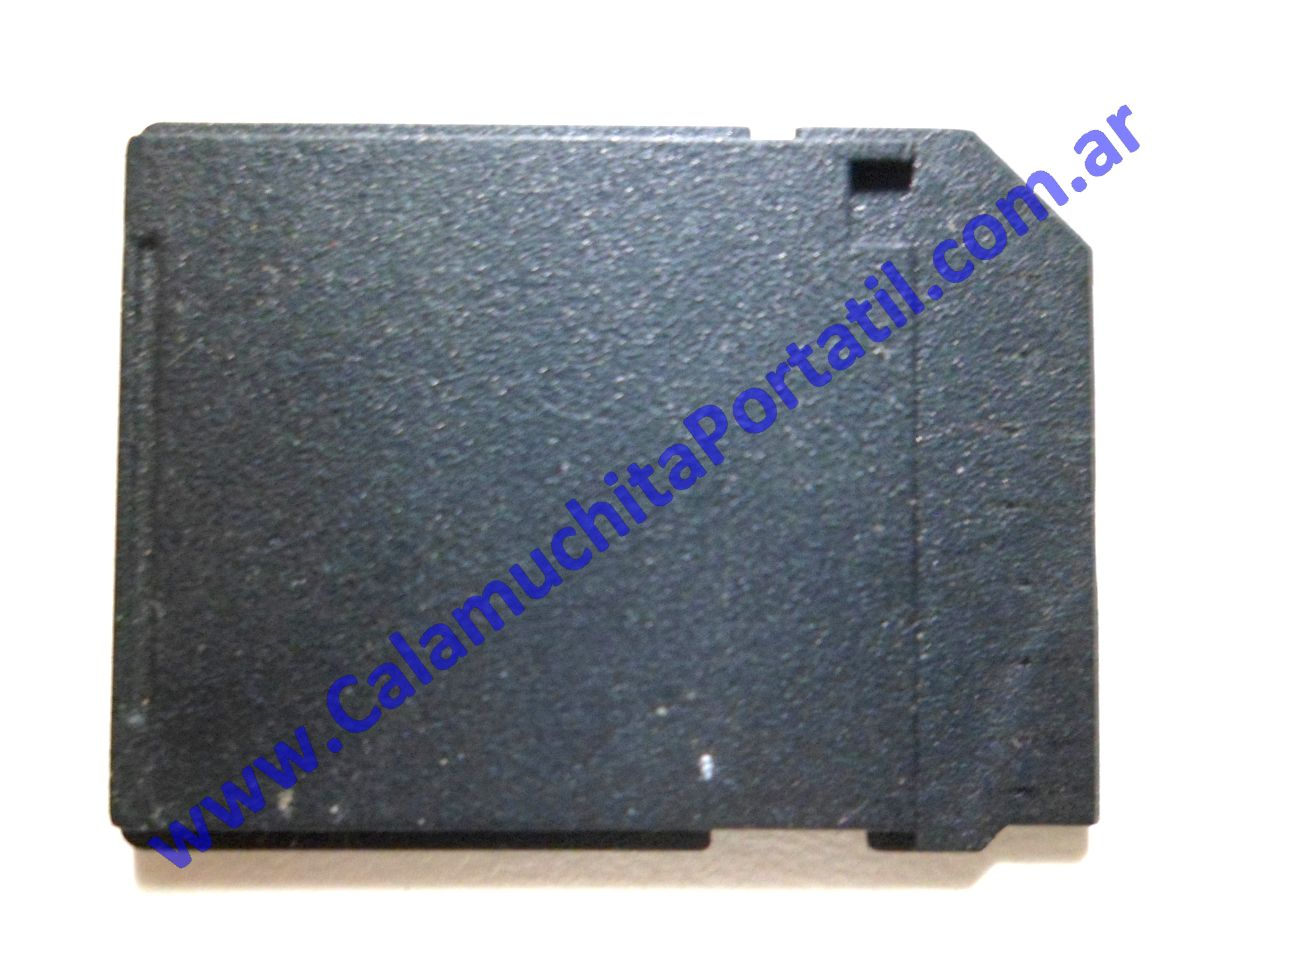 0166XPS Protector SD Asus Eee PC 1011CX